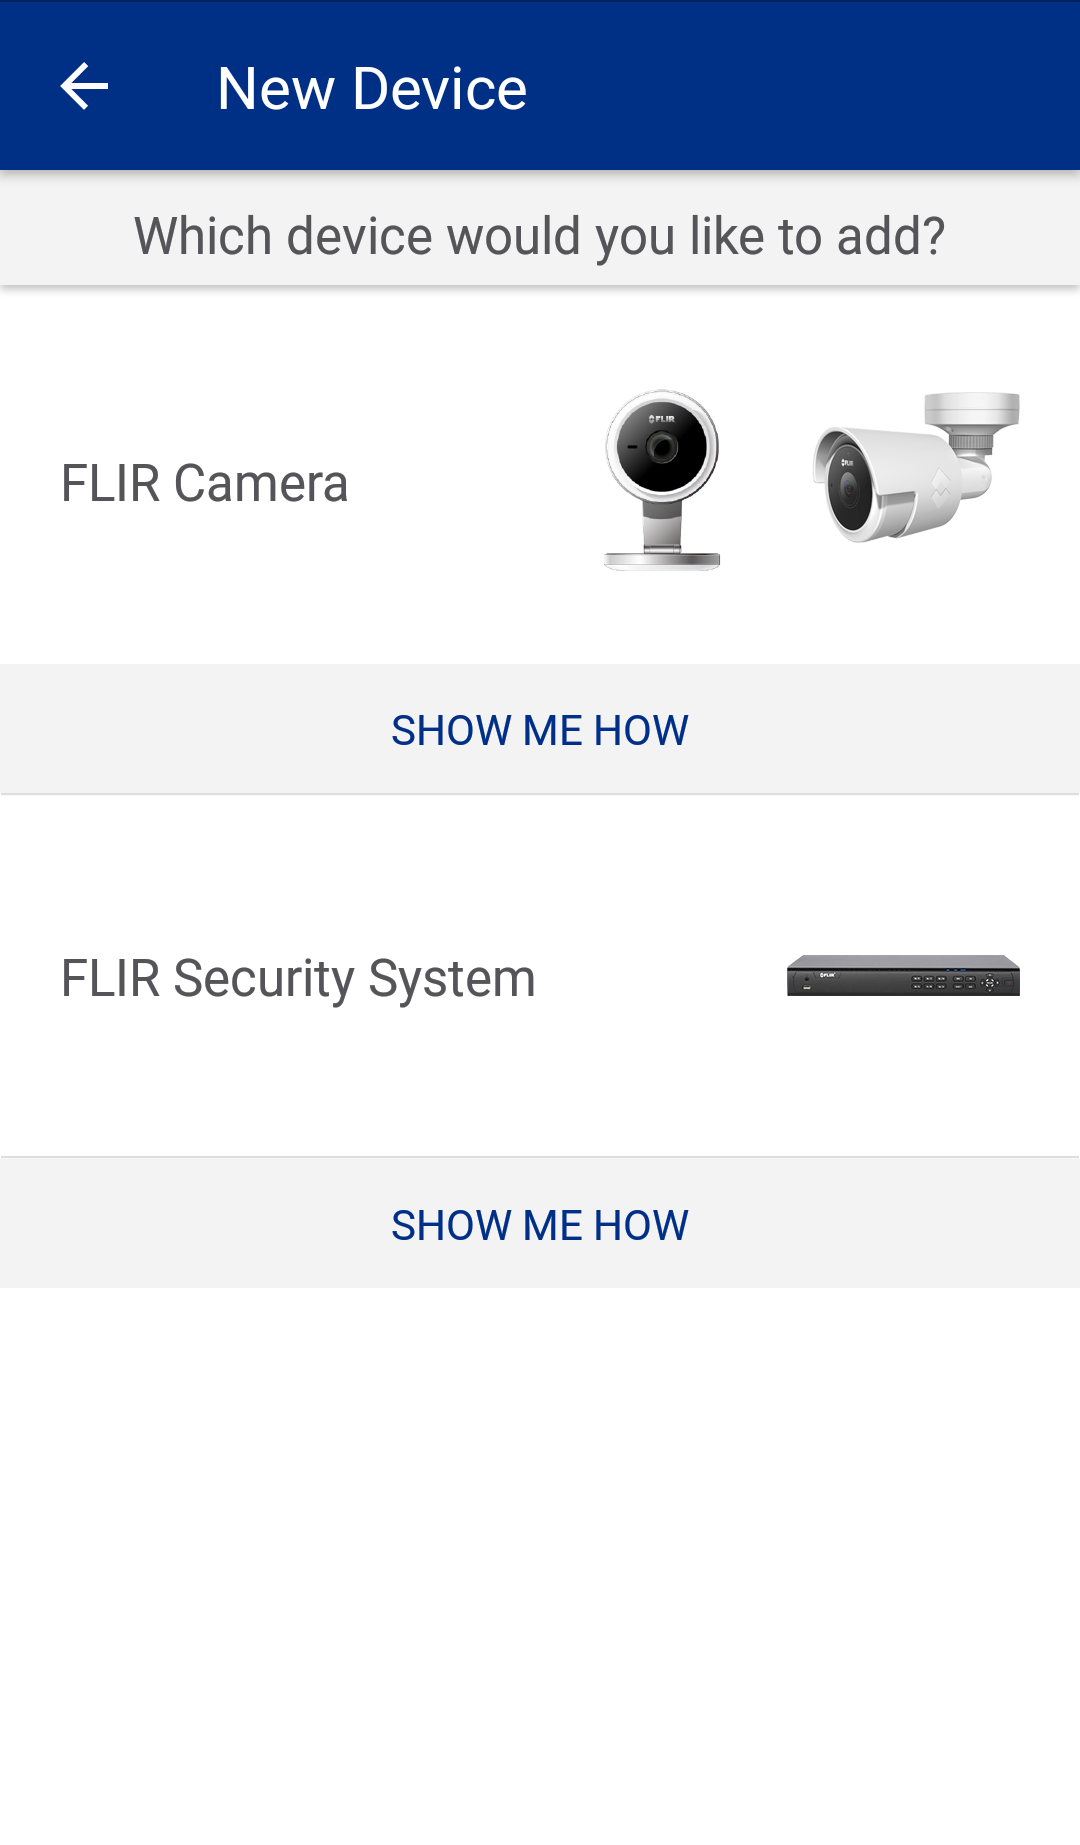 FLIR Secure android - new device